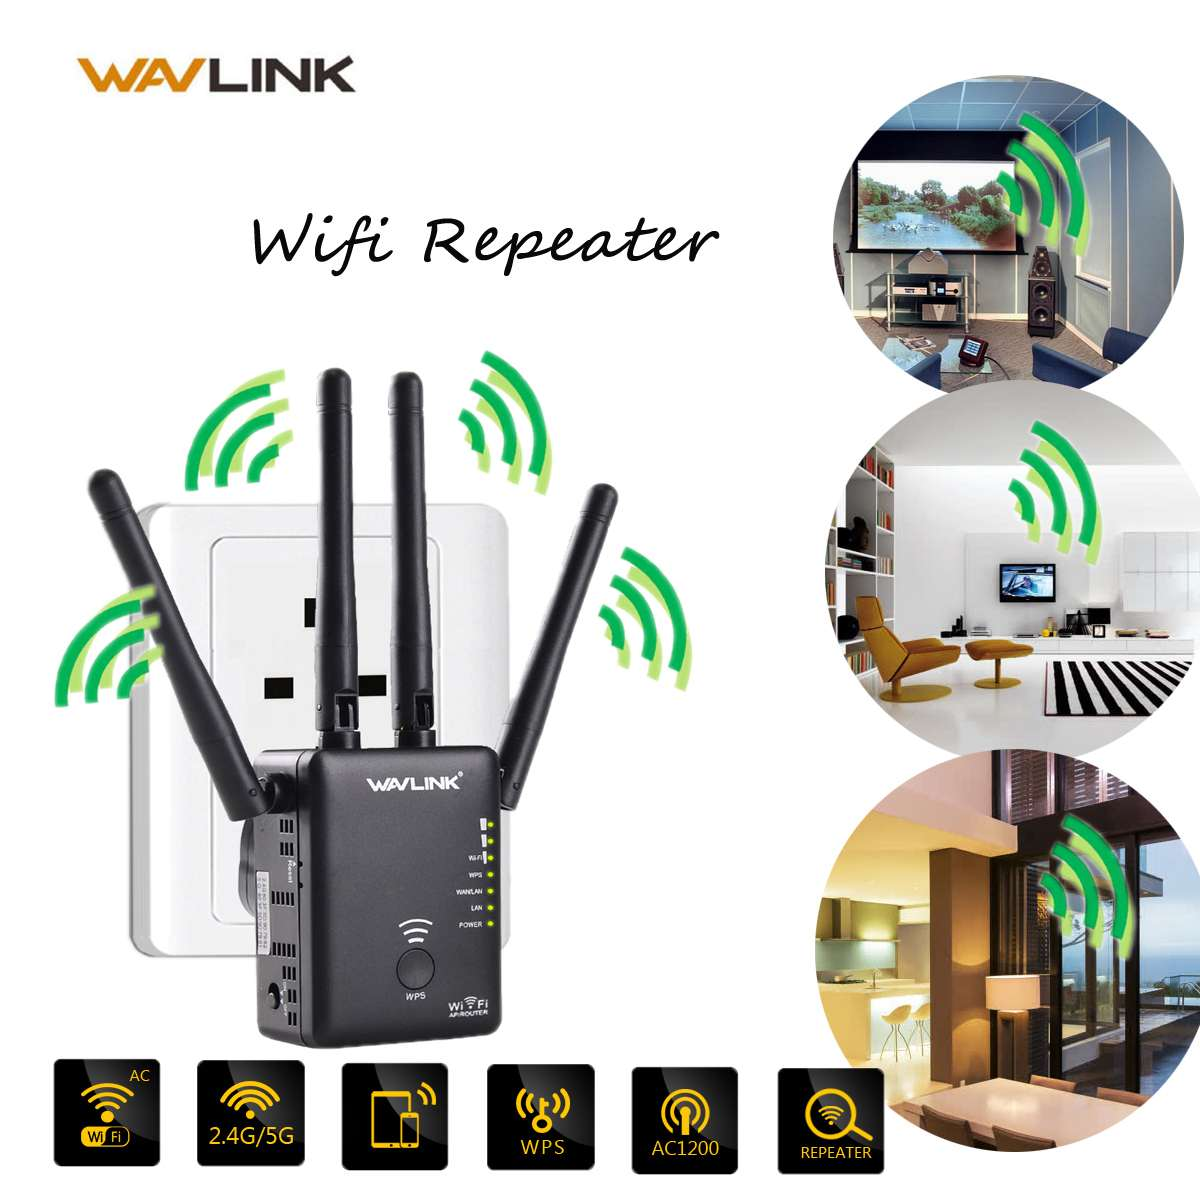 1200Mbps 2.4G&5G Wireless WiFi Repeater For AP/Router 802.11 2X LAN Extender Booster Networking Routers